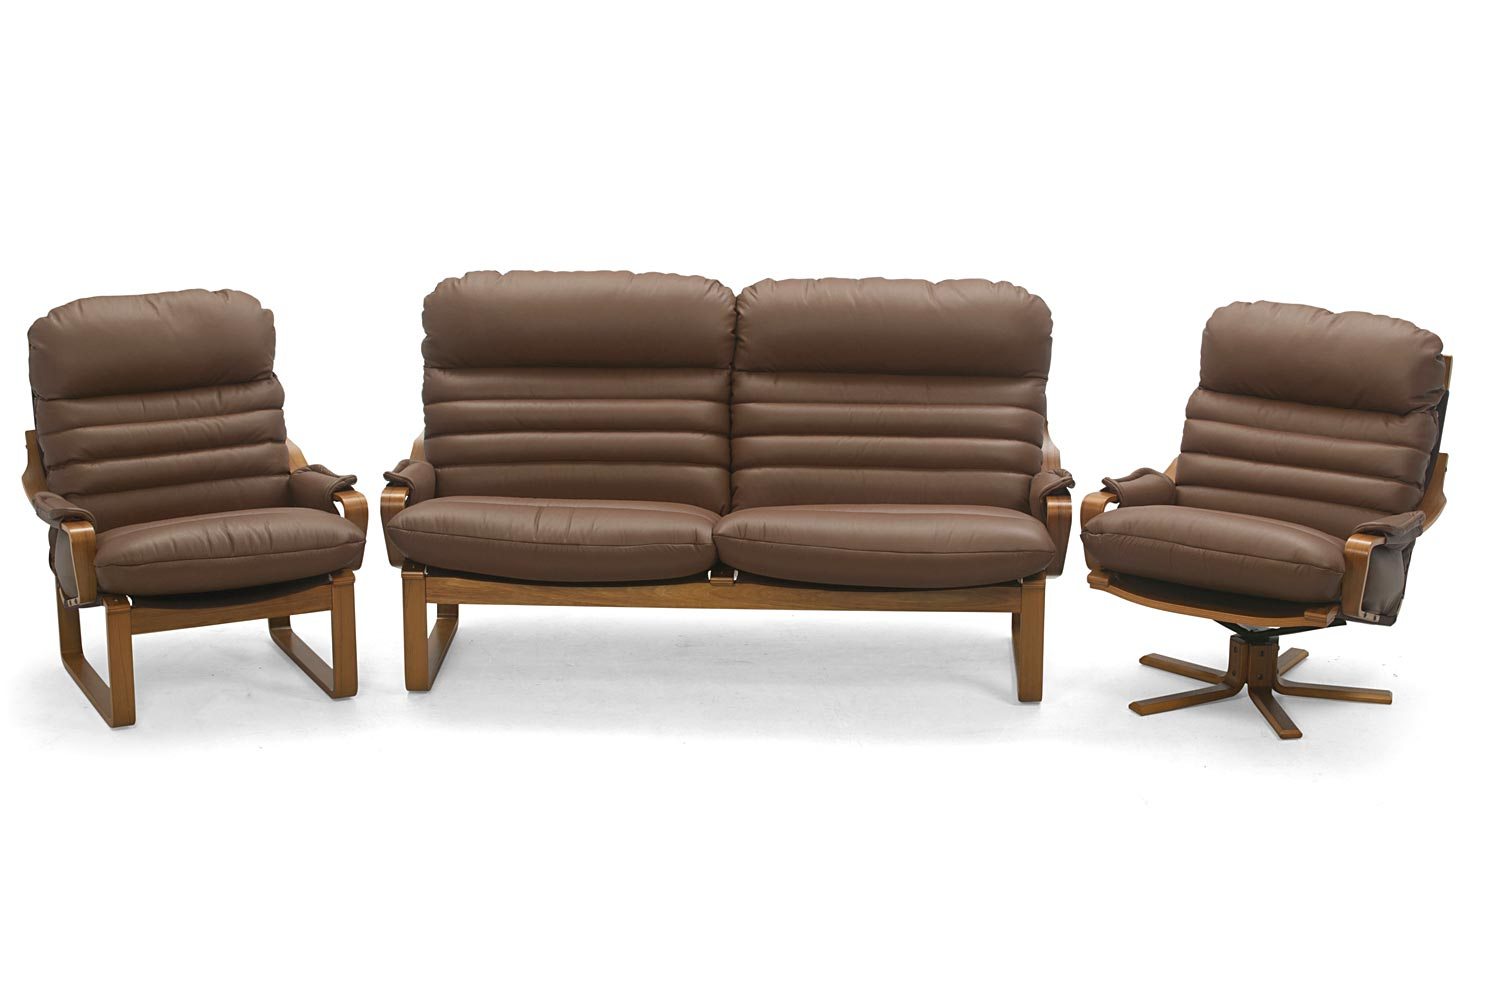 Fred Lowen Heritage Archives Tessa Furniture